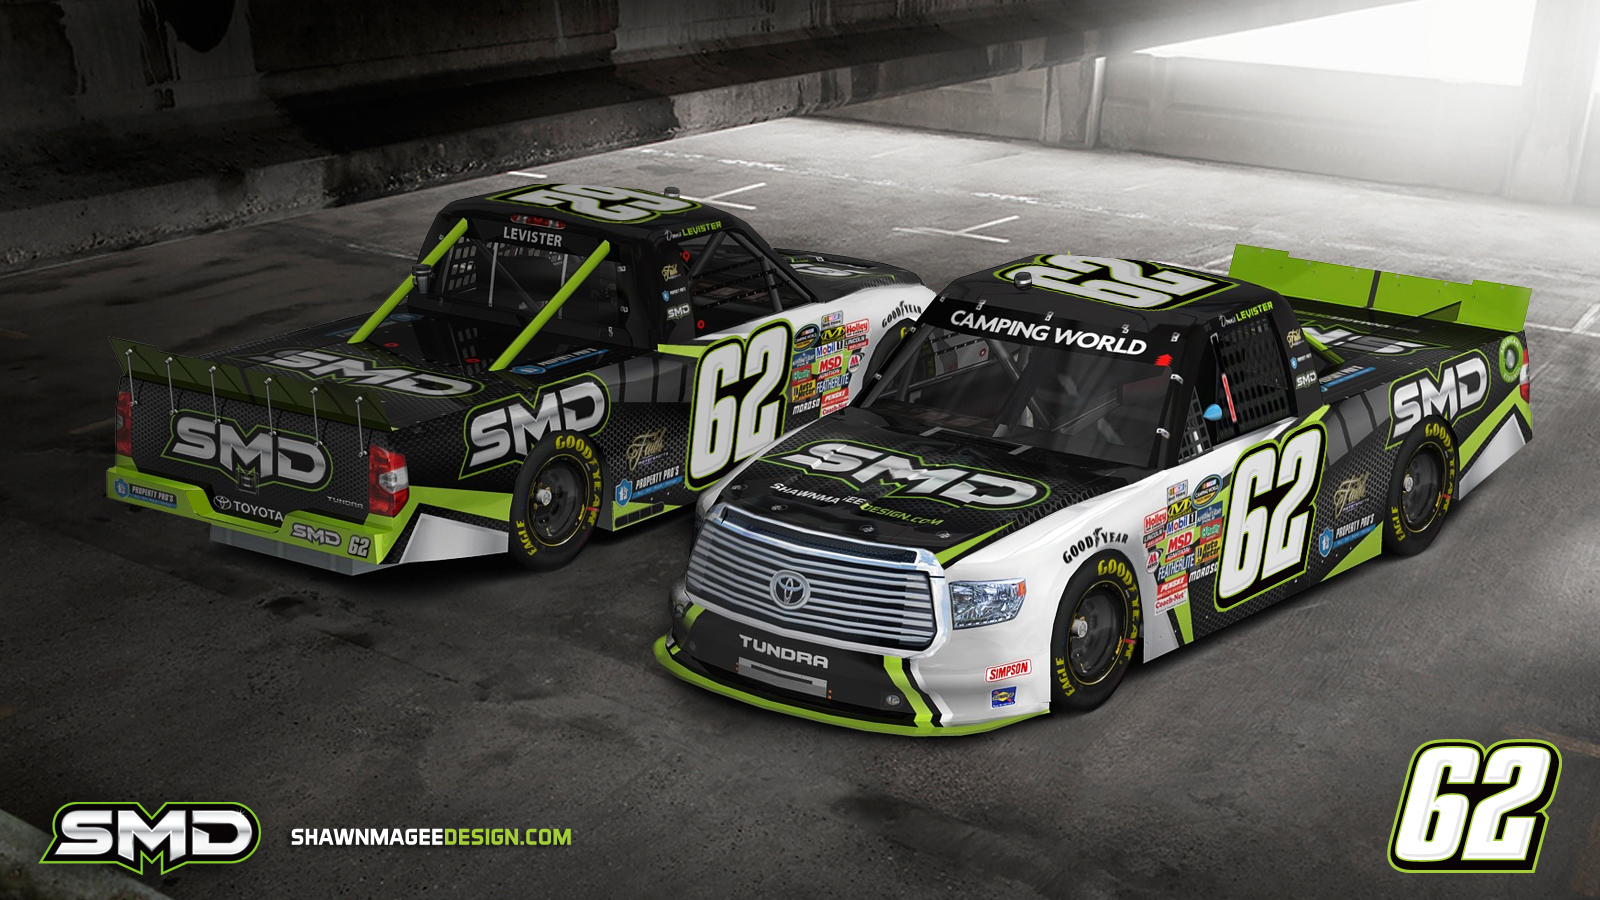 Tundra Racing Series >> SMD Nascar Paint Scheme Design | Motorsports Design